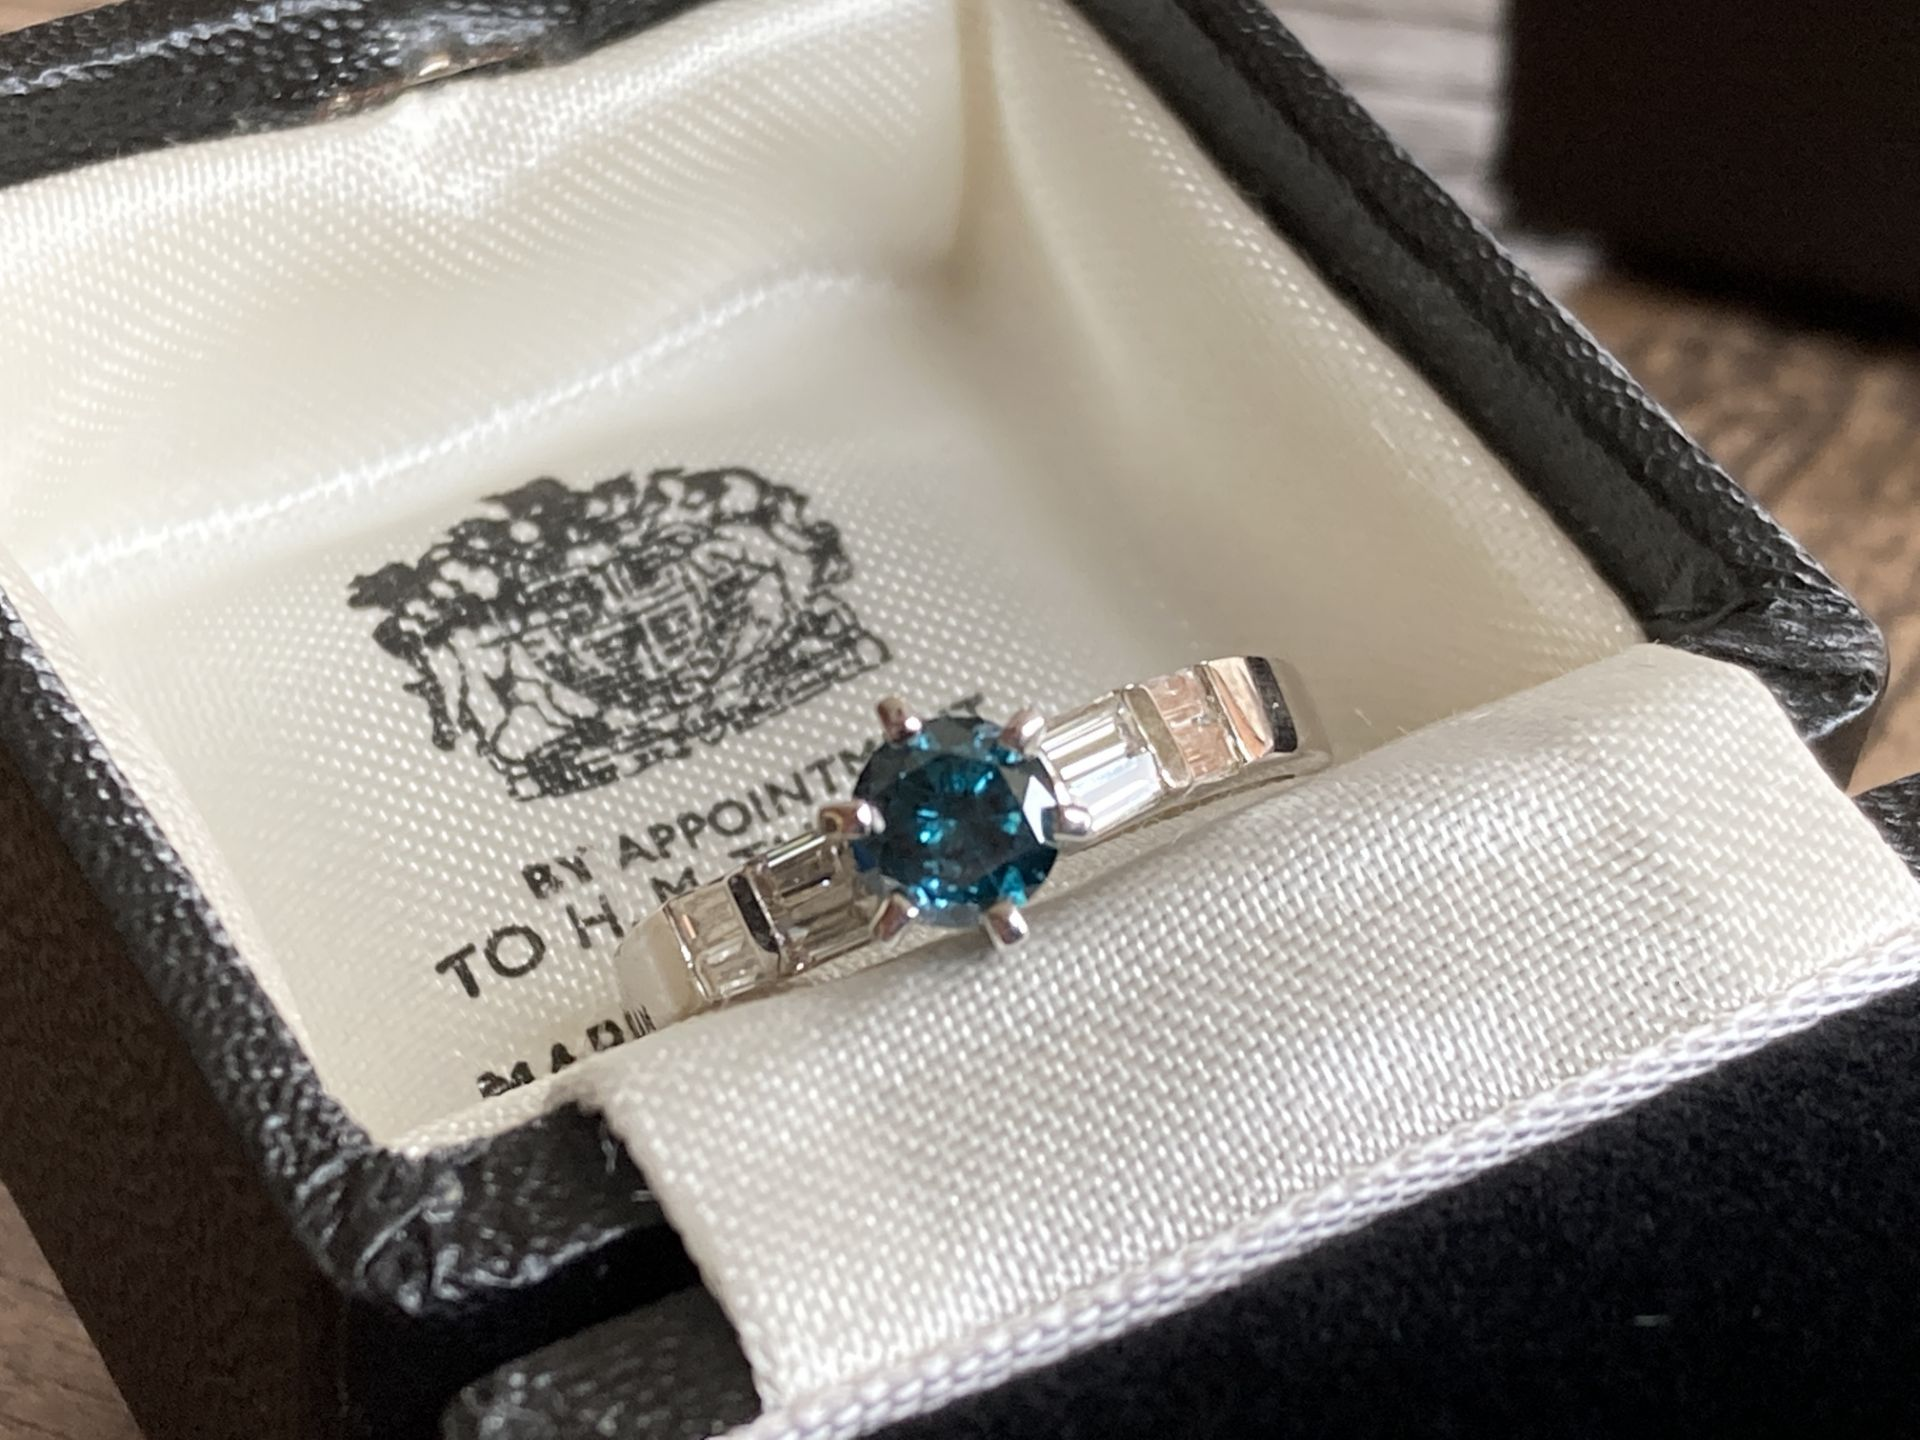 0.55CT + 0.25CT BLUE AND WHITE DIAMOND SET RING IN 14K GOLD - Image 2 of 2